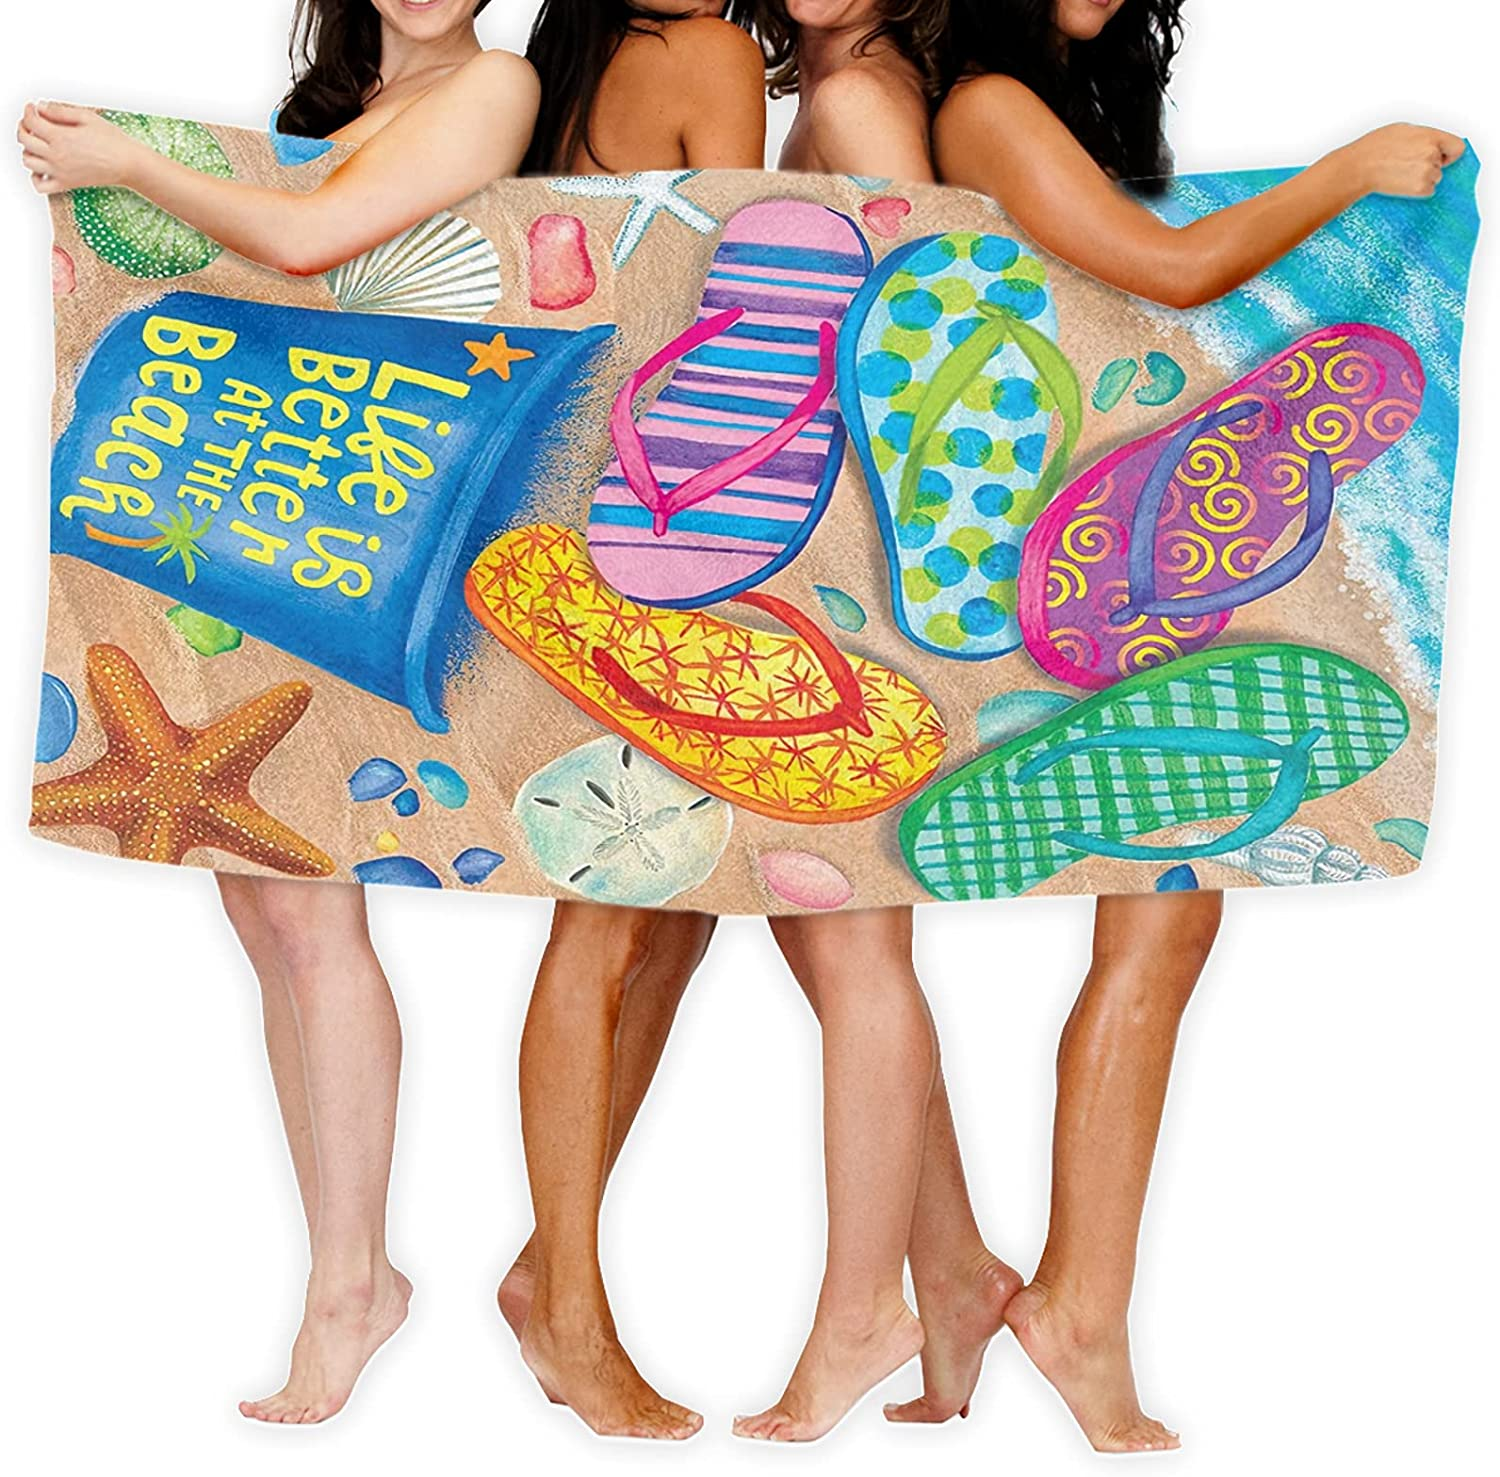 ~ Year-end annual account Better at The Beach Summer Flops Towel- Nautical Overseas parallel import regular item Microfi